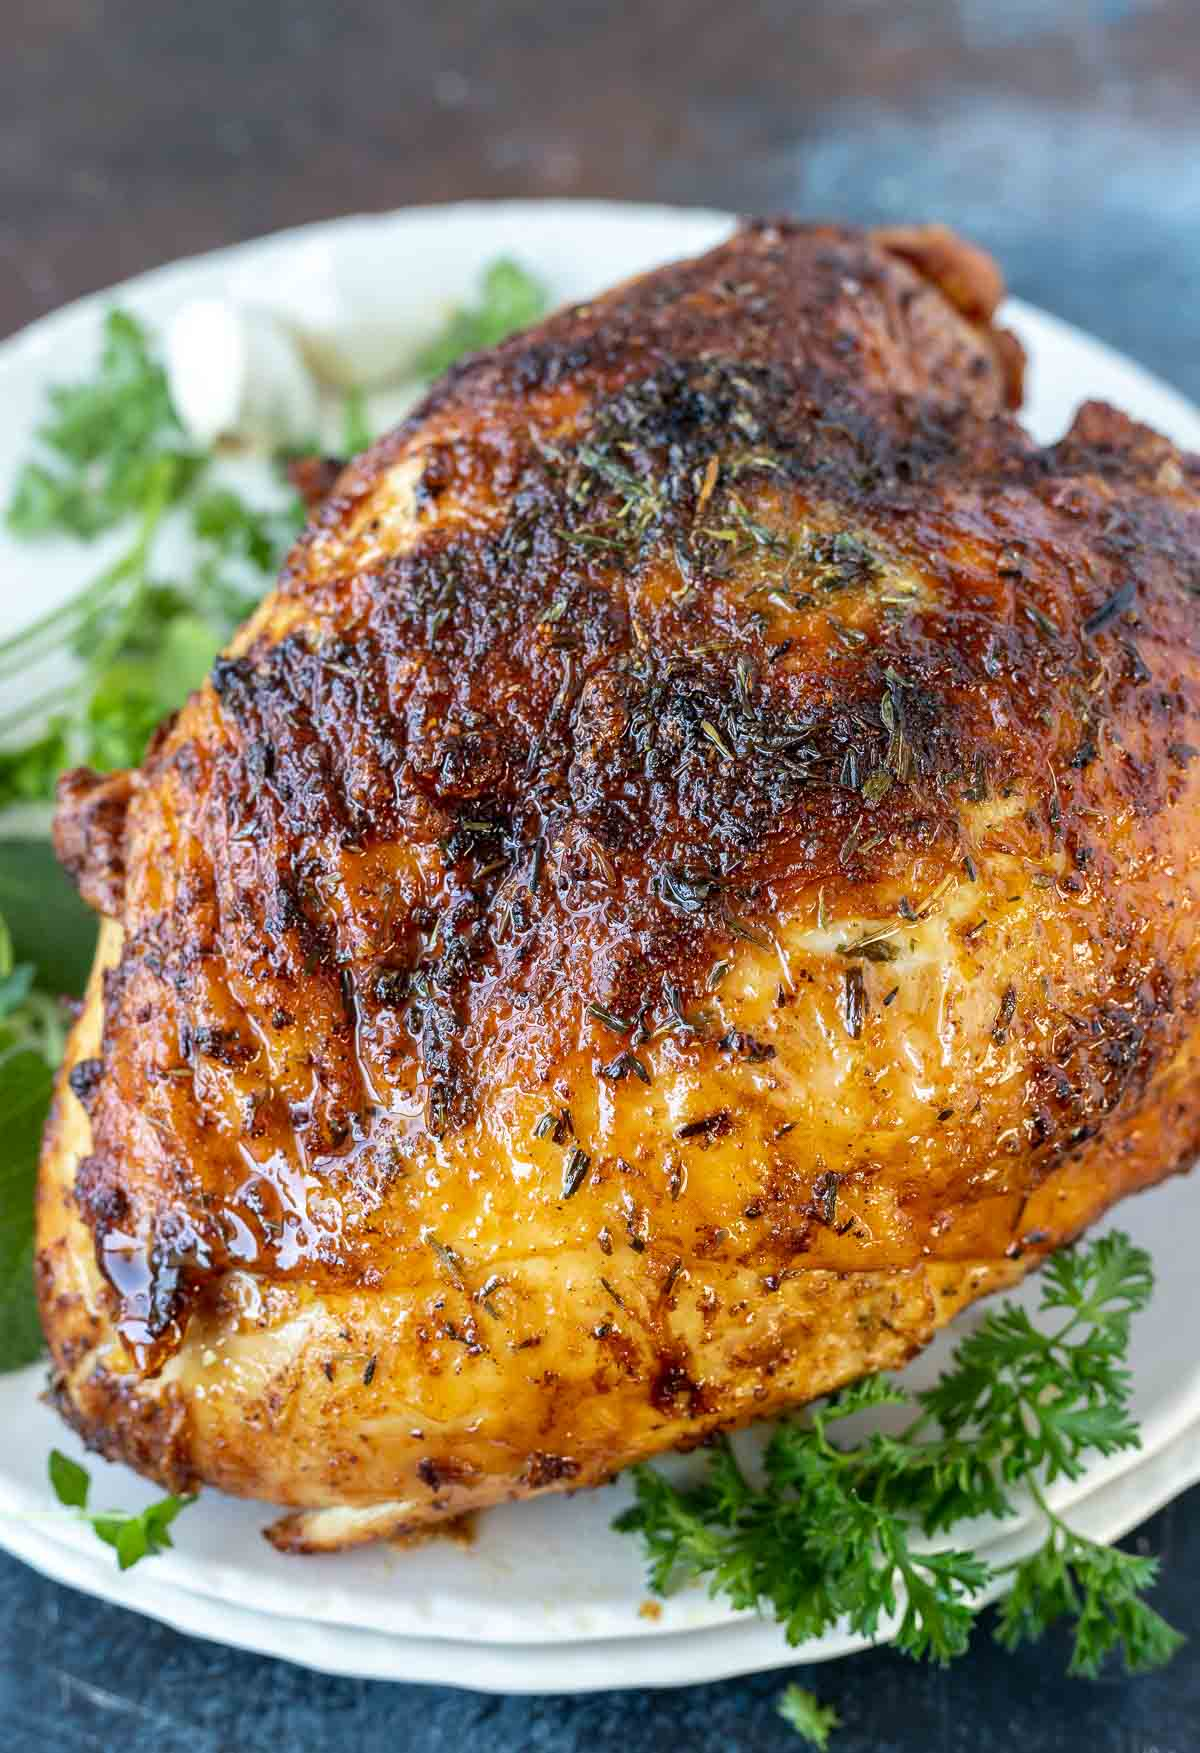 browned roasted turkey breast on white serving platter with herbs